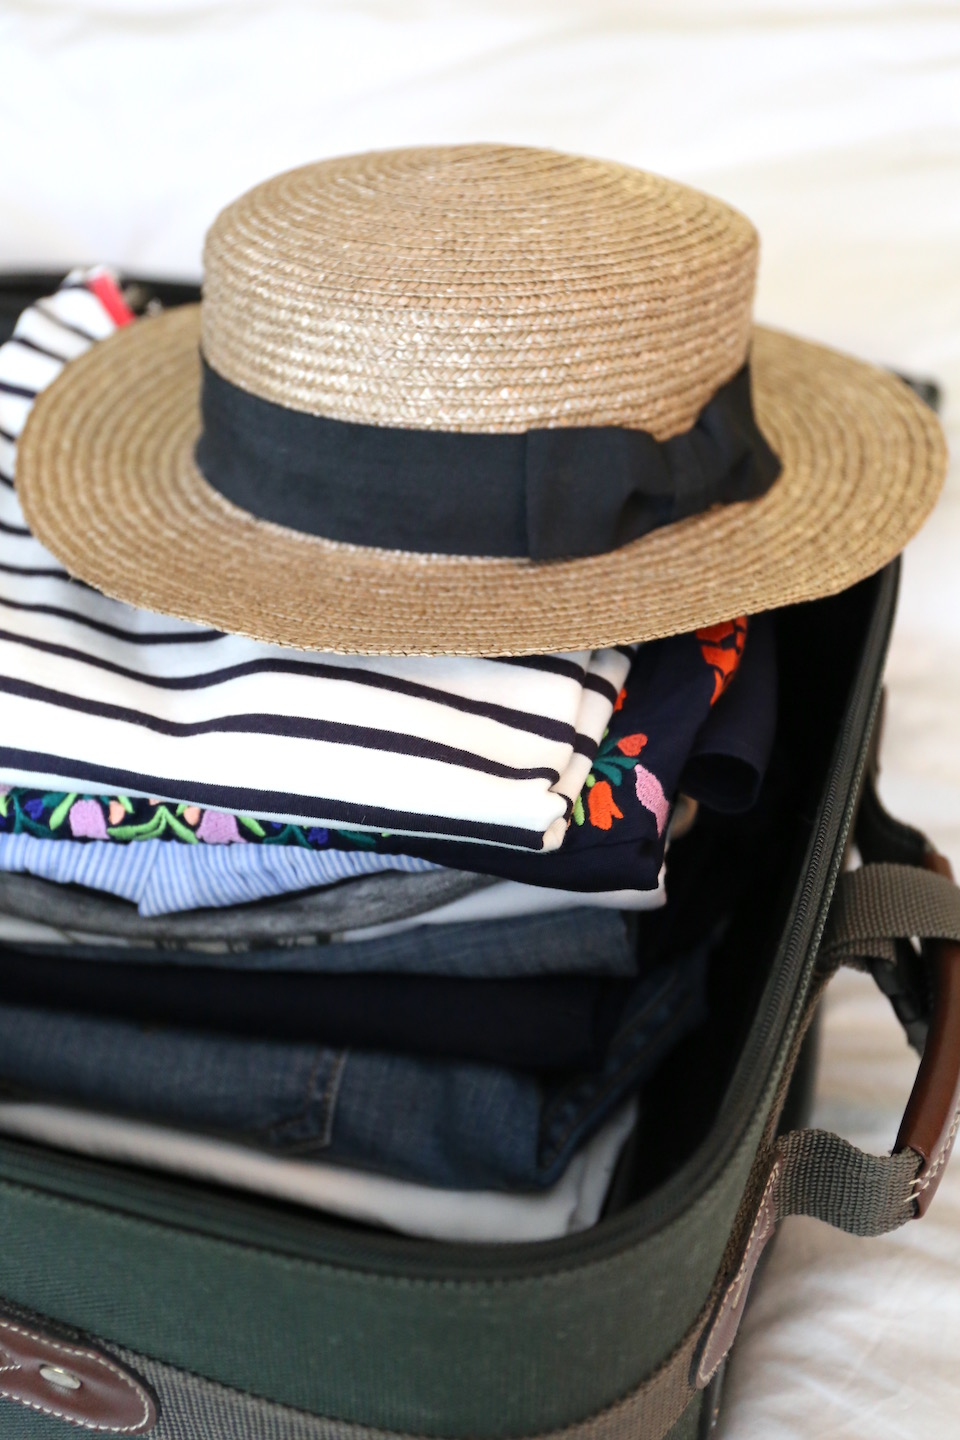 Summer Vacation Packing Guide 2